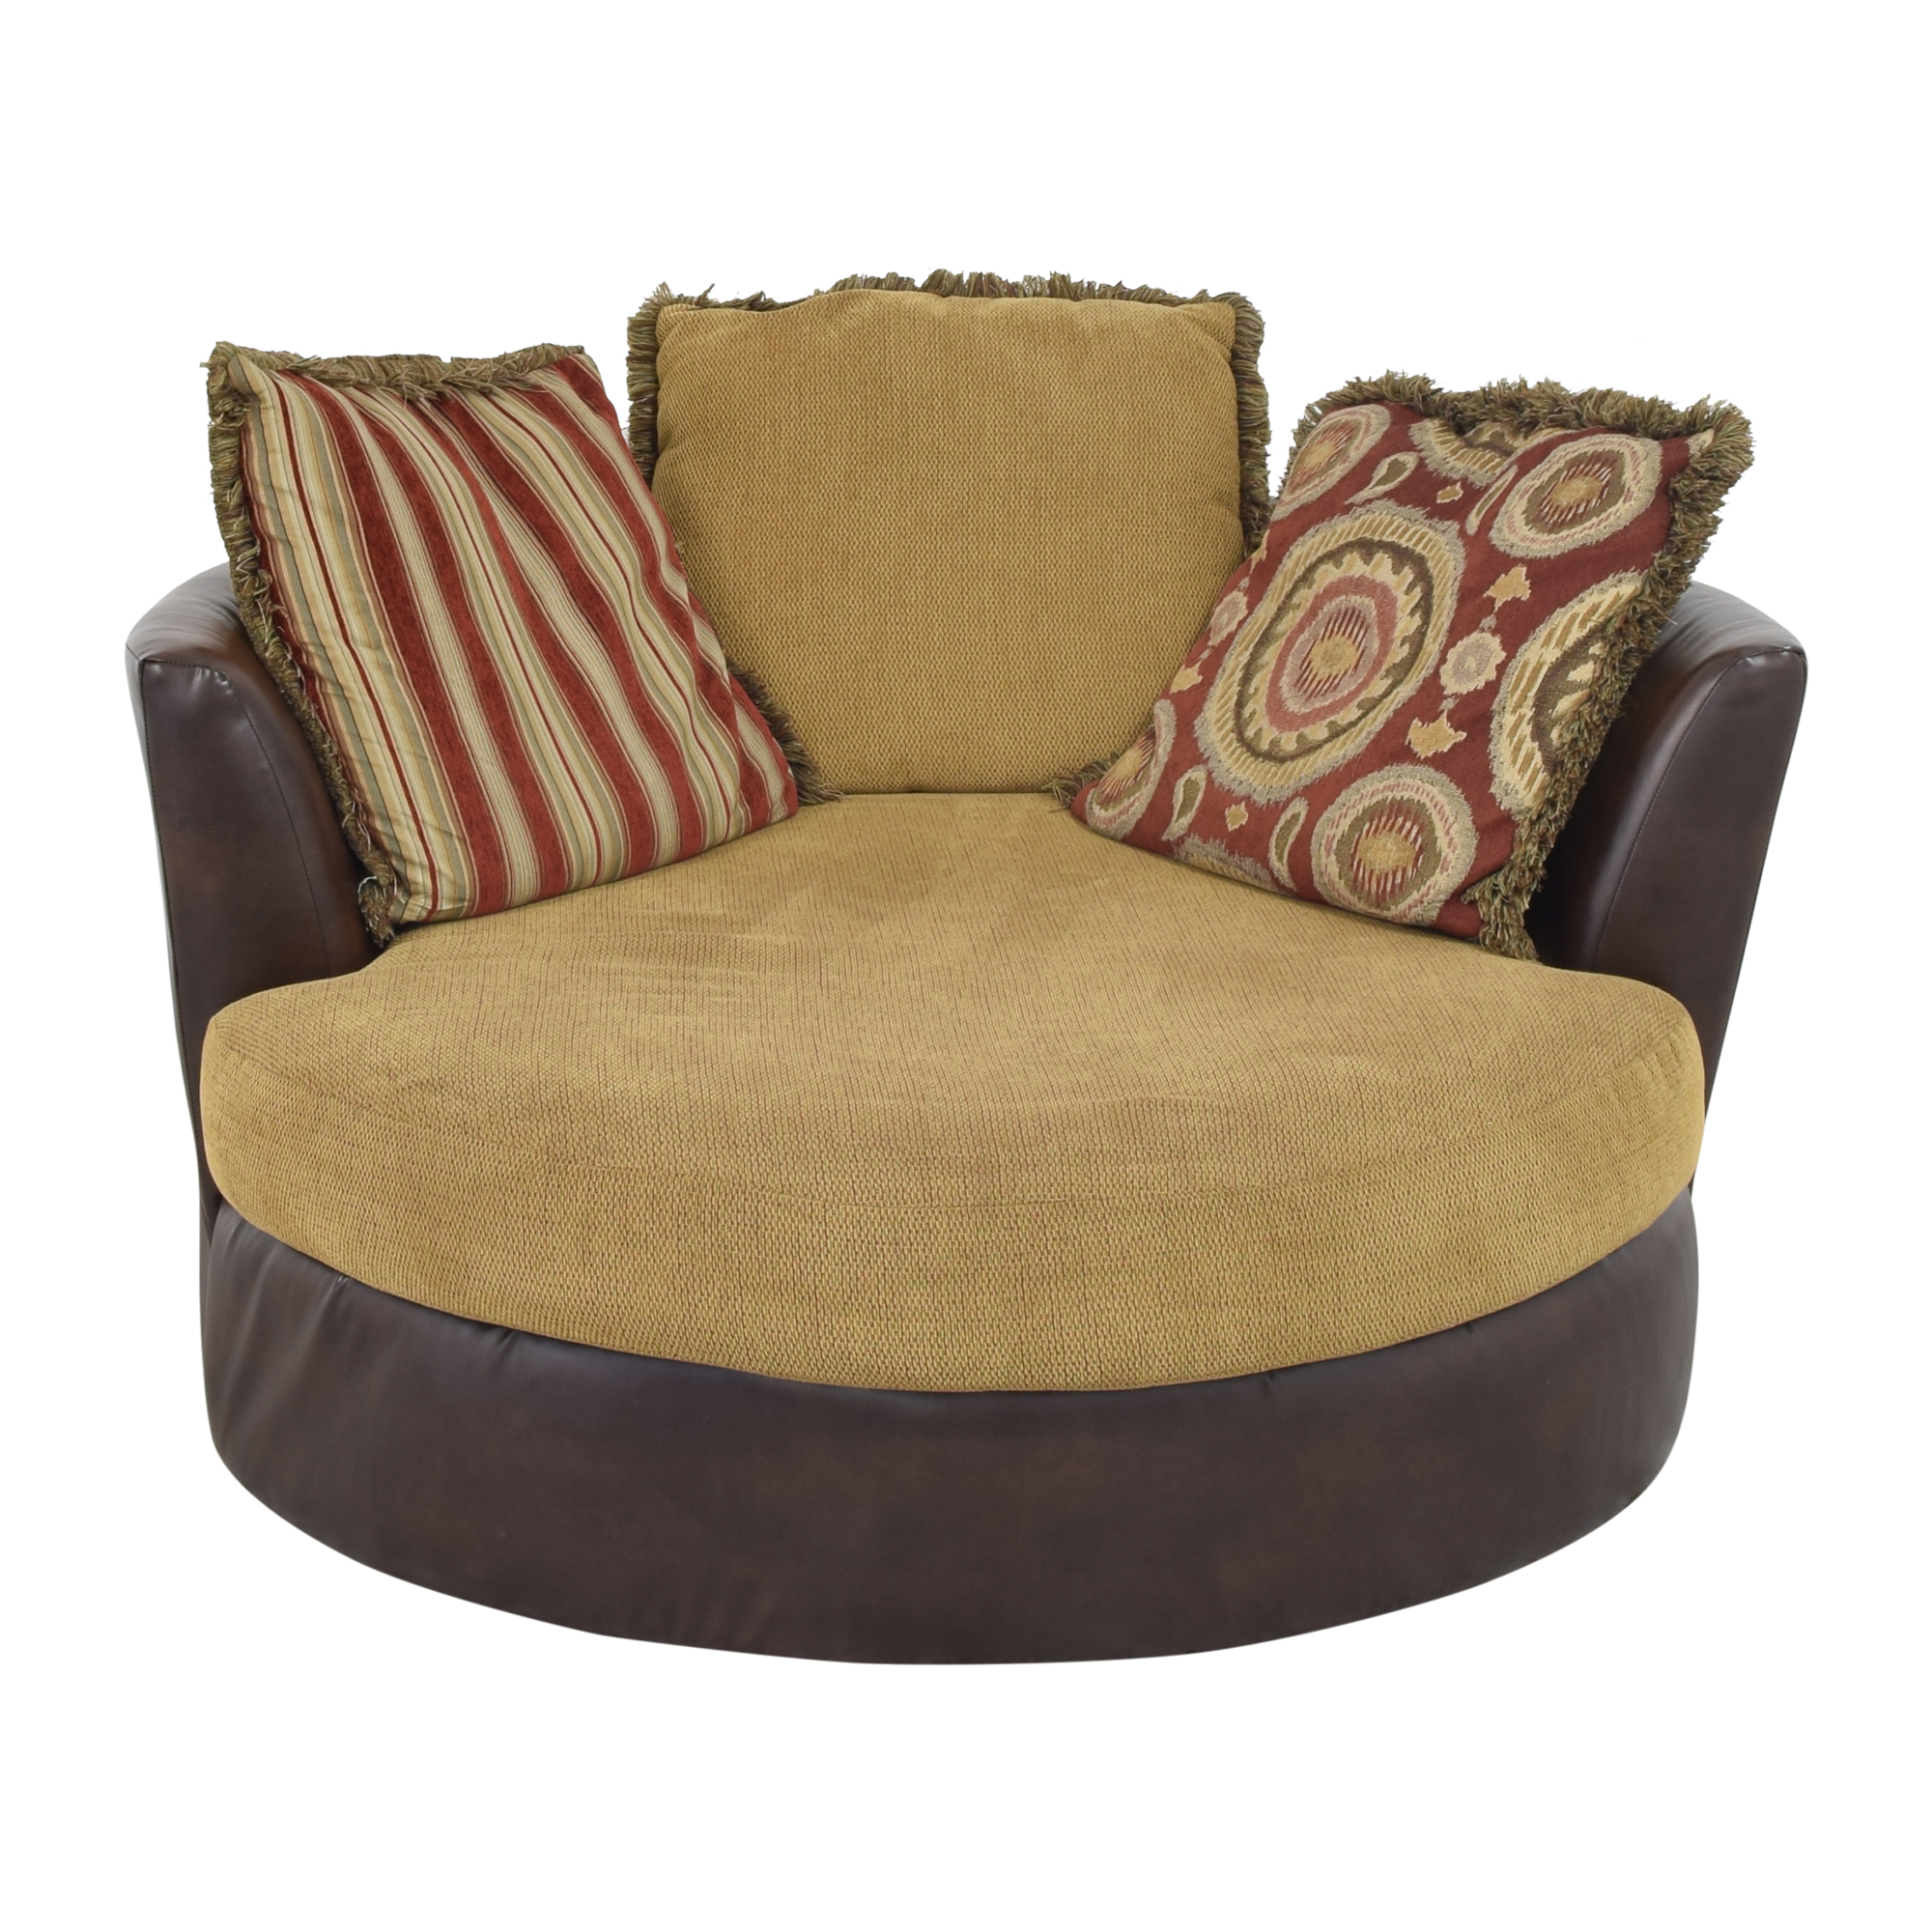 Albany Industries Albany Industries Newport Swivel Chair